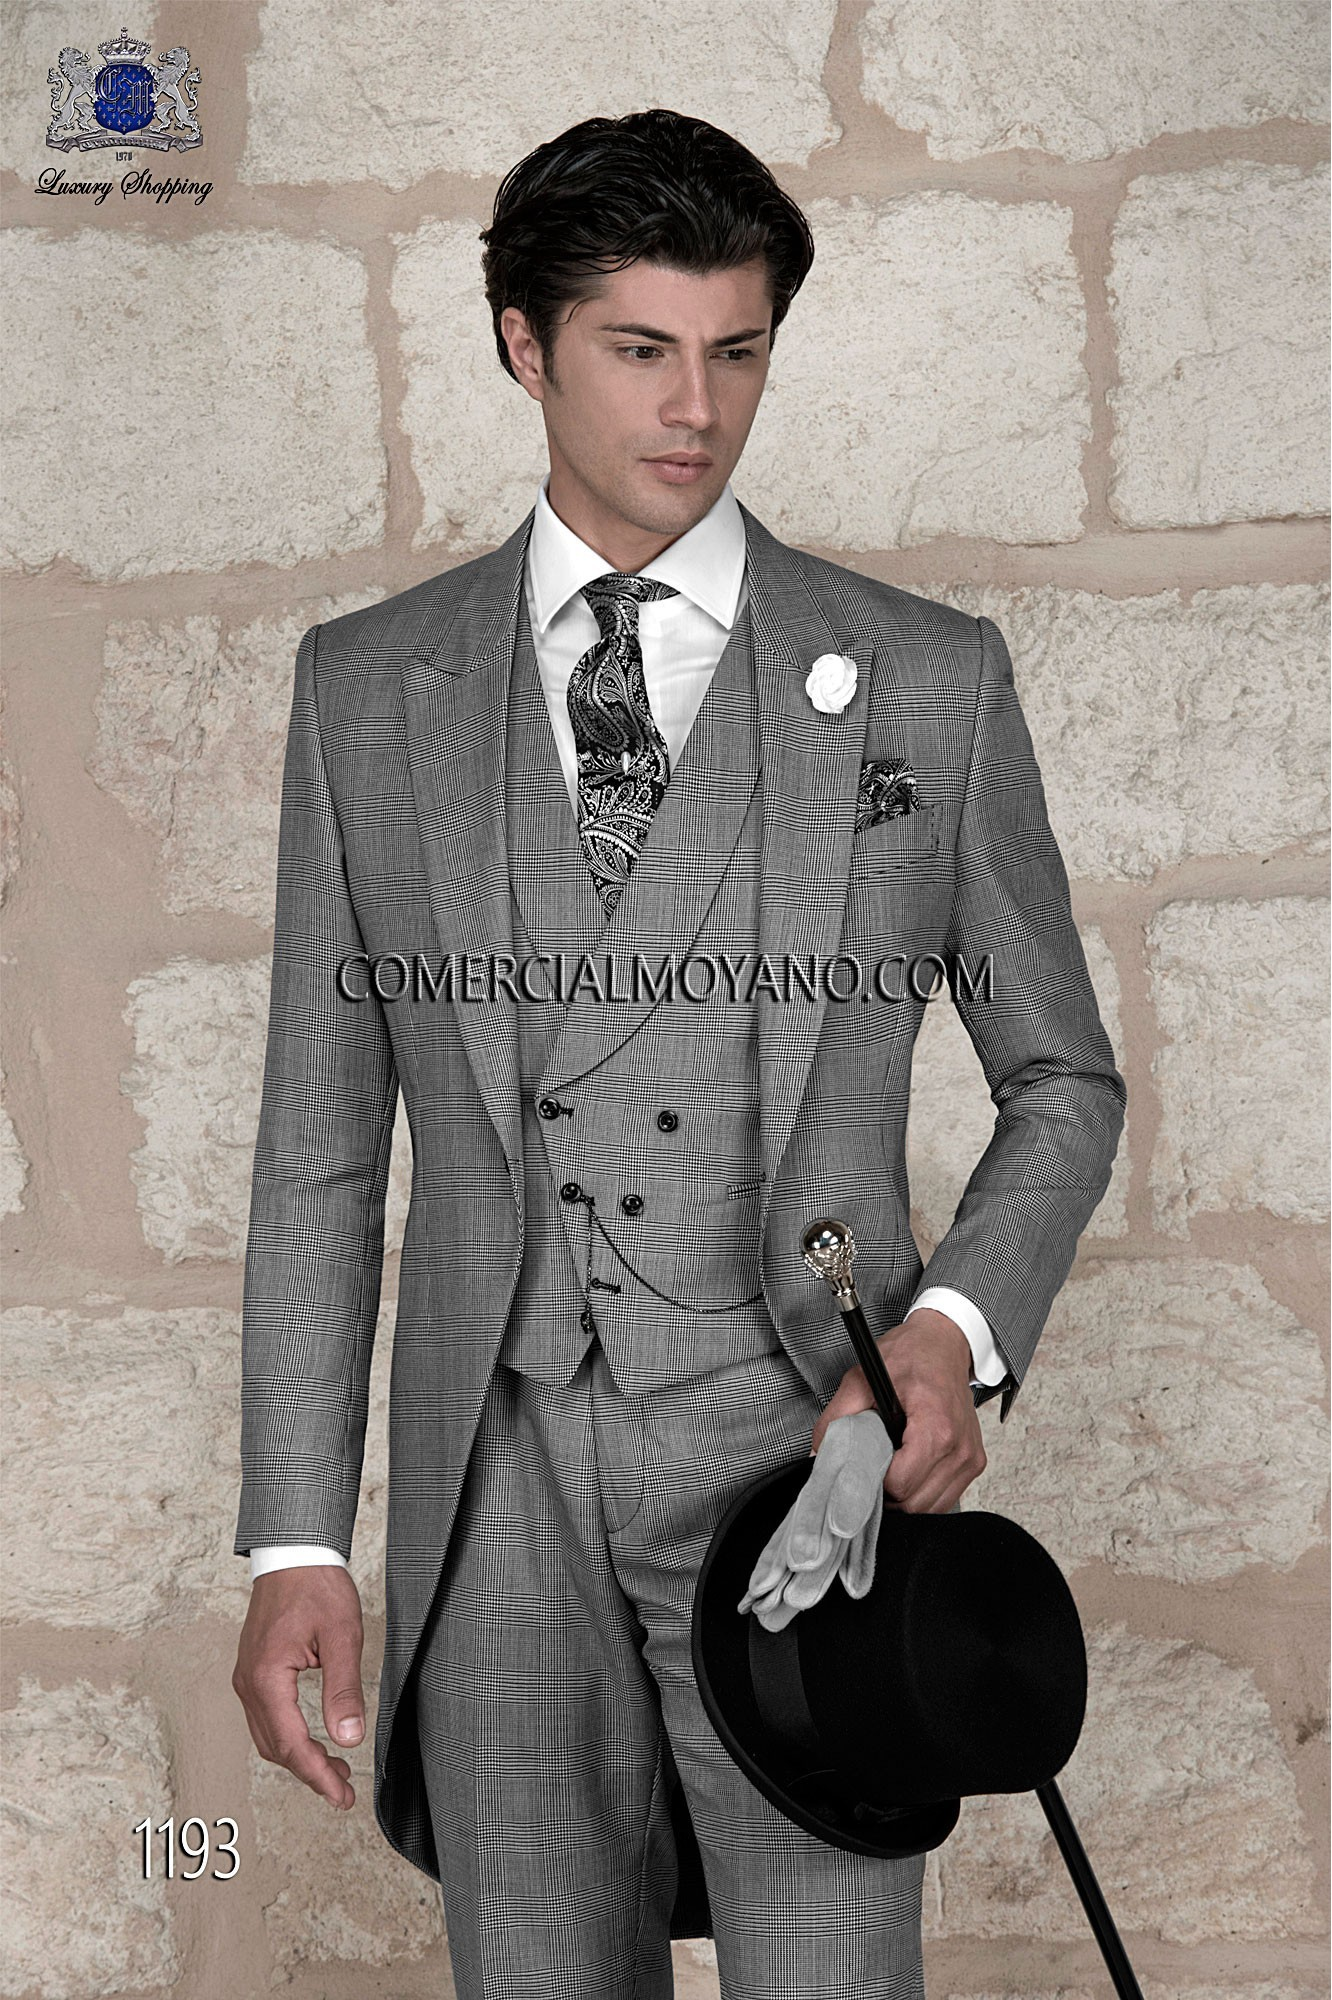 Italian bespoke wedding morning suit, prince of wales, style 1193 Ottavio Nuccio Gala, Gentleman collection.